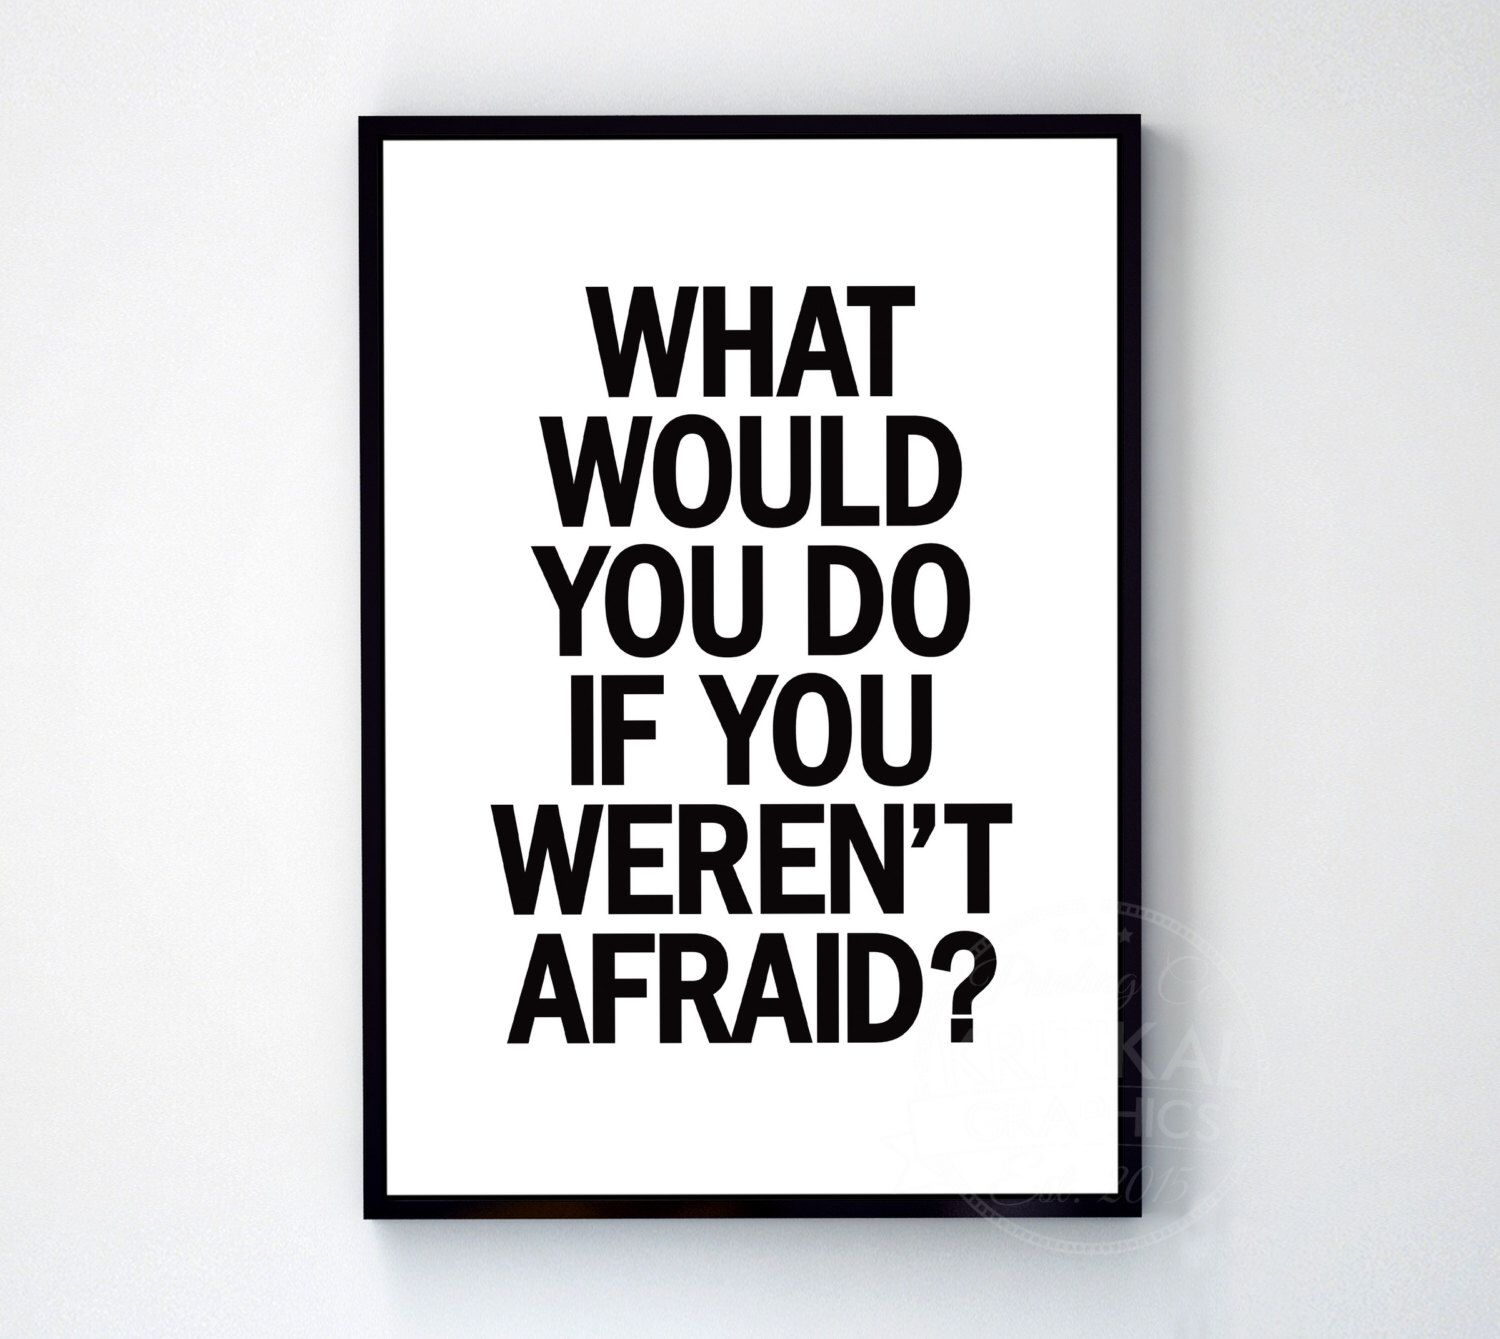 Image result for what would you do if you werent afraid?